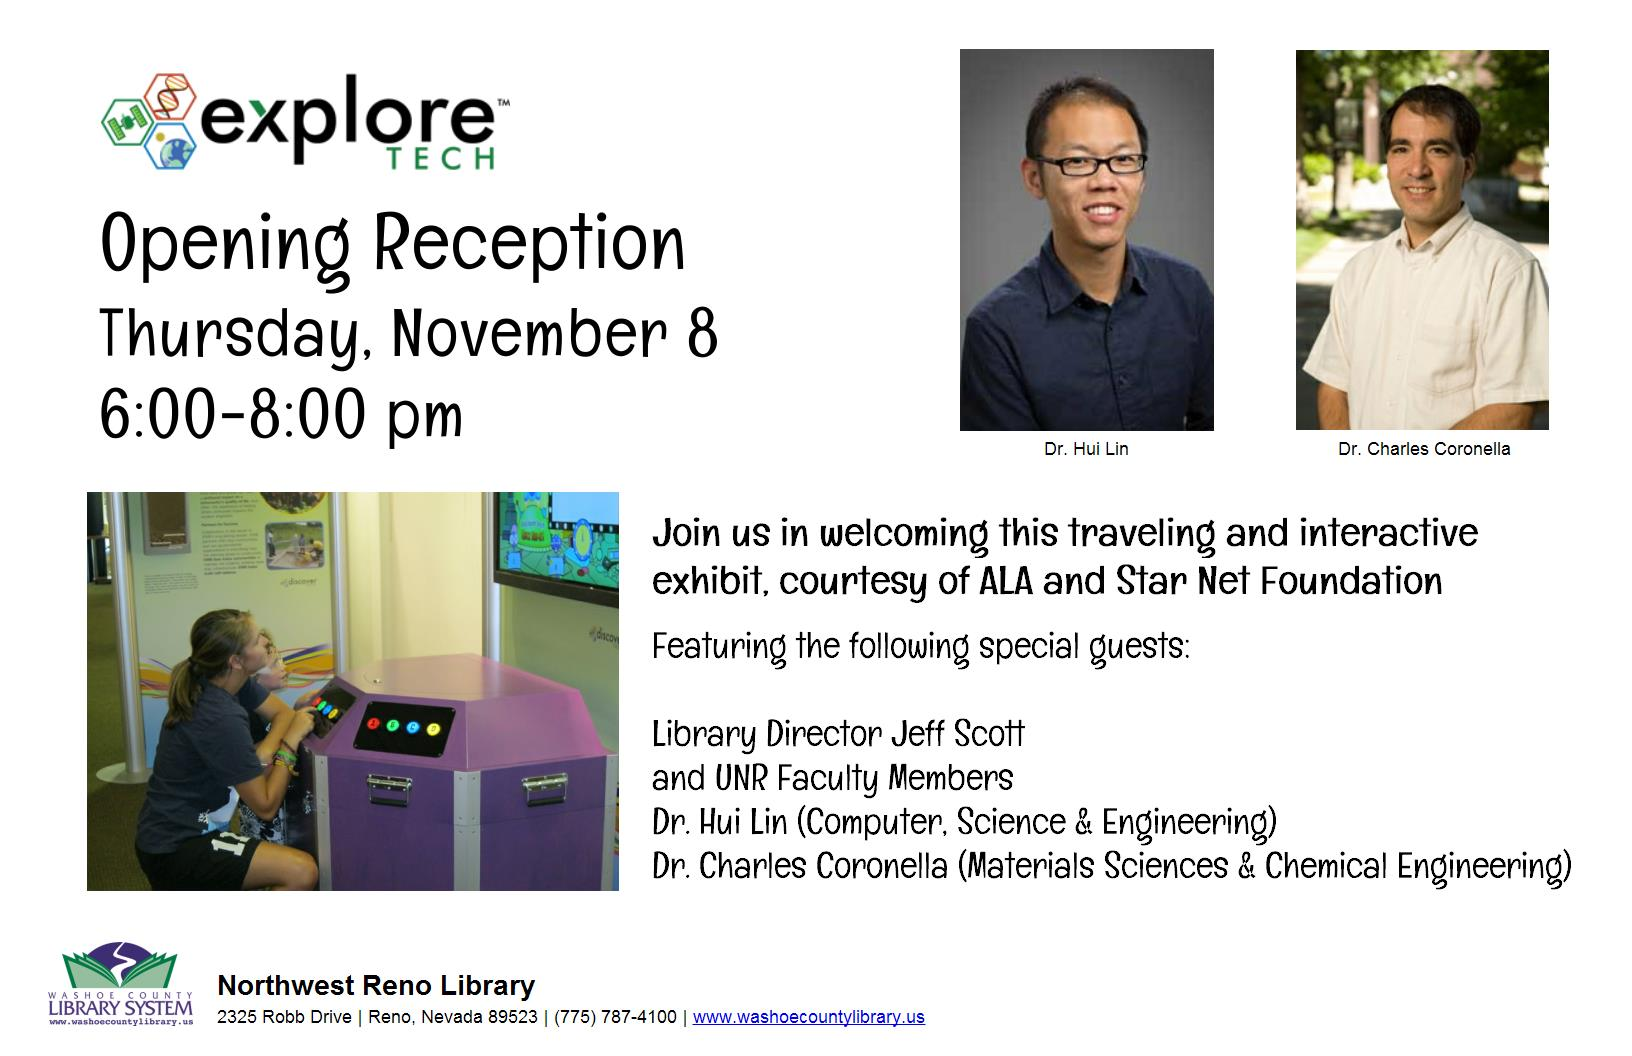 OPENING RECEPTION: Explore Tech: Engineers Make a World of Difference